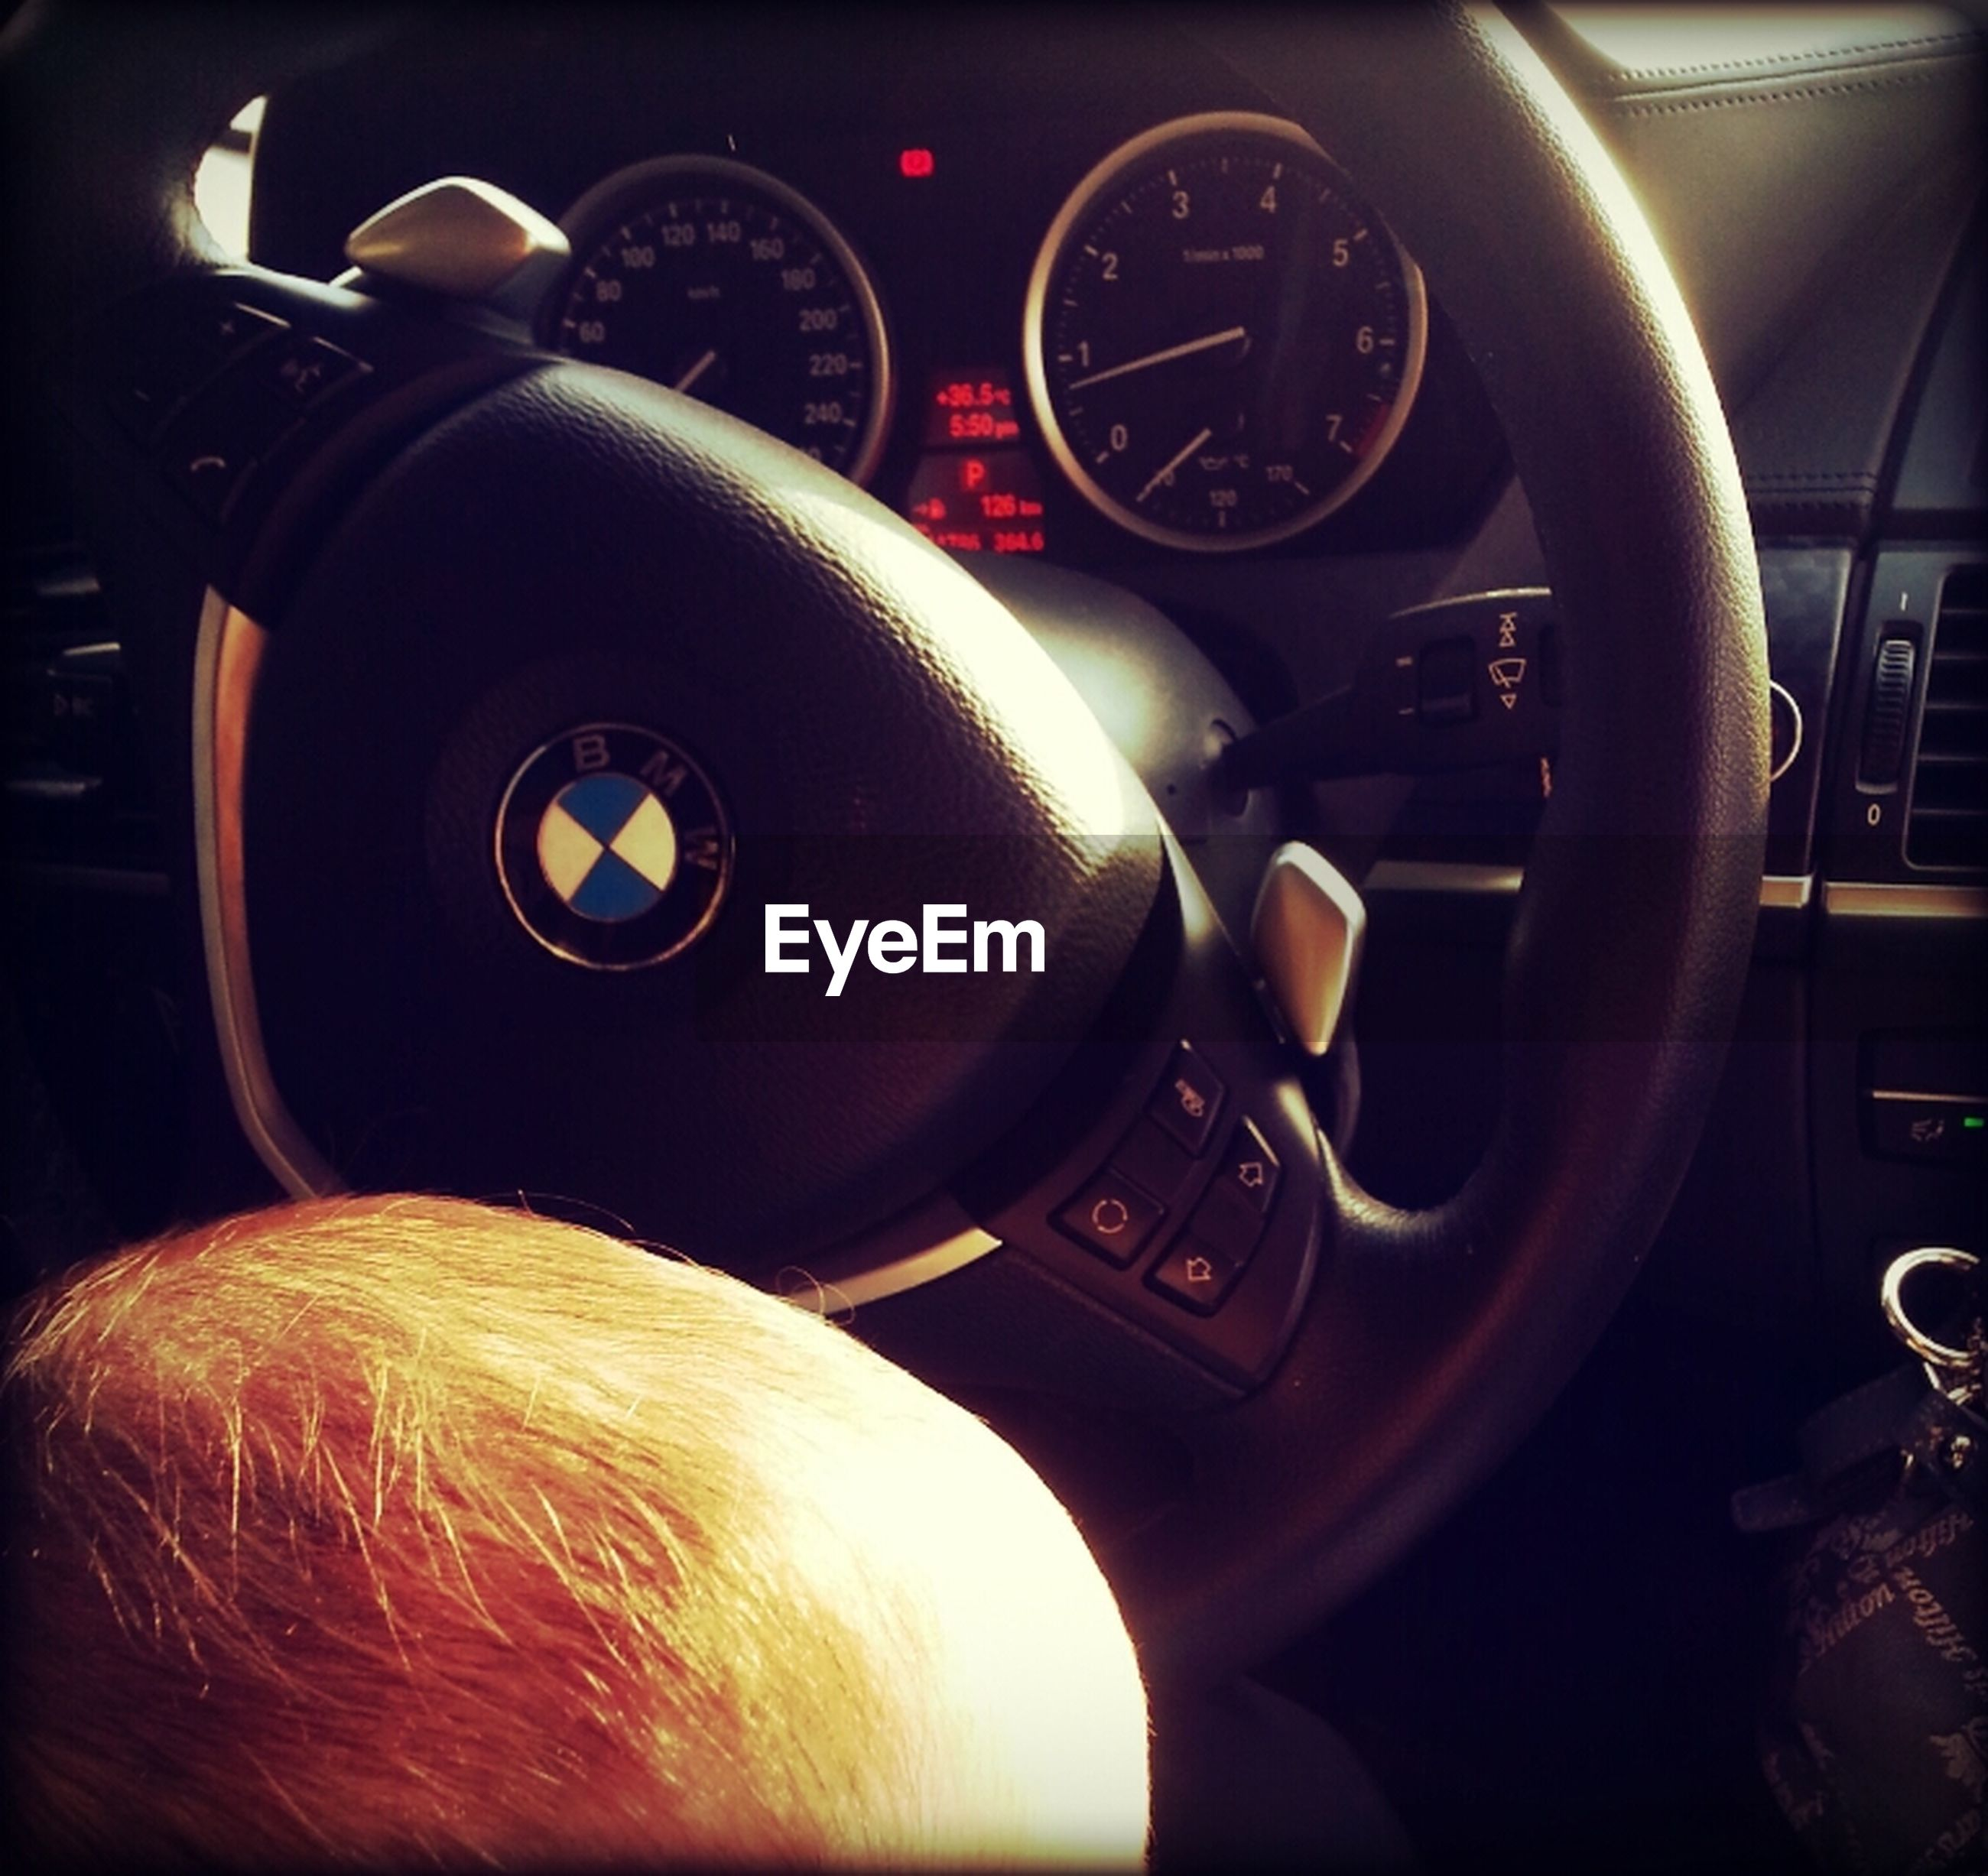 transportation, land vehicle, mode of transport, car, car interior, part of, vehicle interior, close-up, travel, cropped, side-view mirror, steering wheel, dashboard, reflection, vehicle part, technology, motorcycle, speedometer, stationary, photography themes